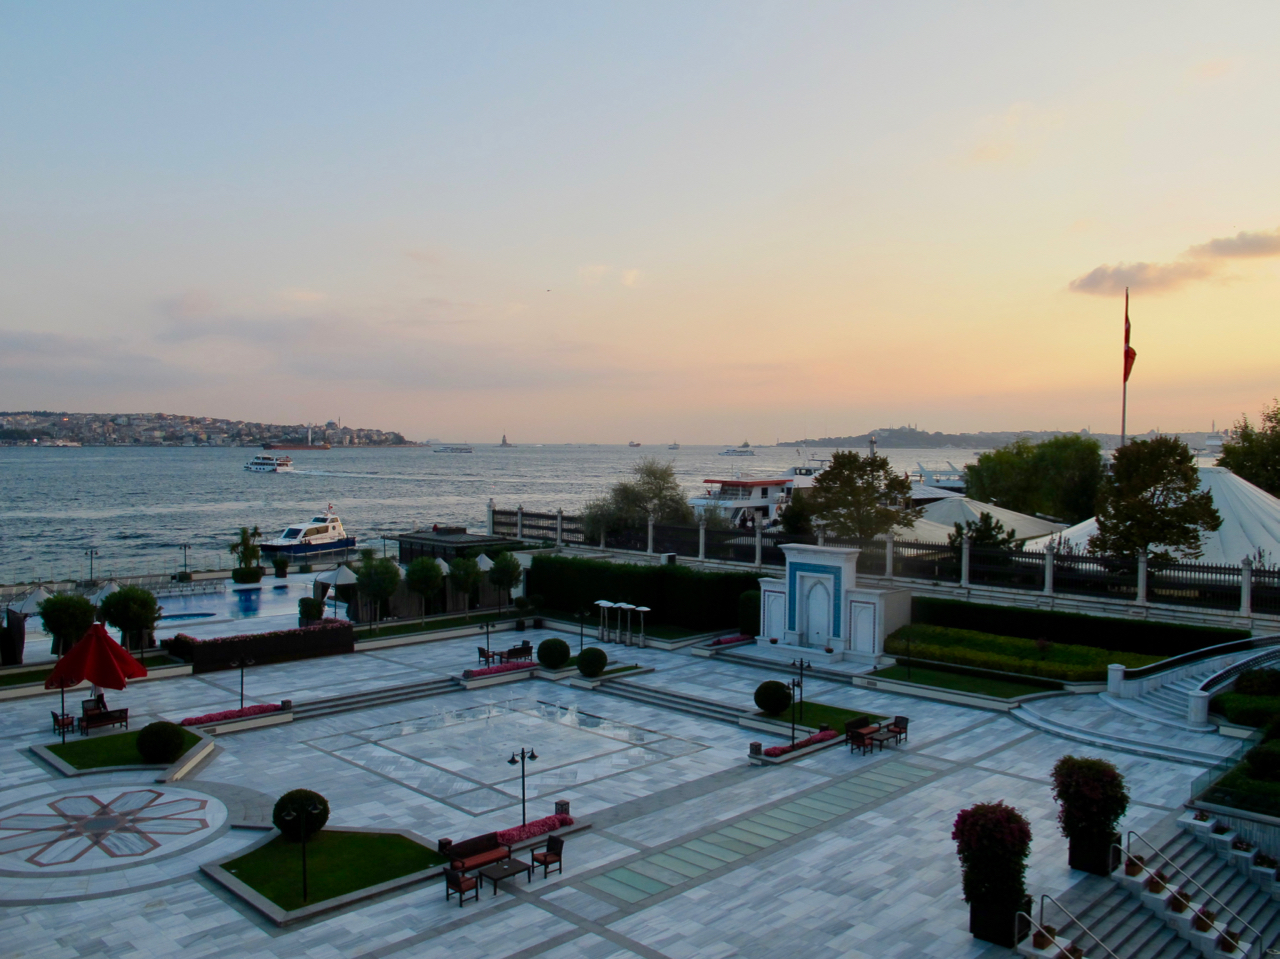 Sunset on the Bosphorus is not to be missed.